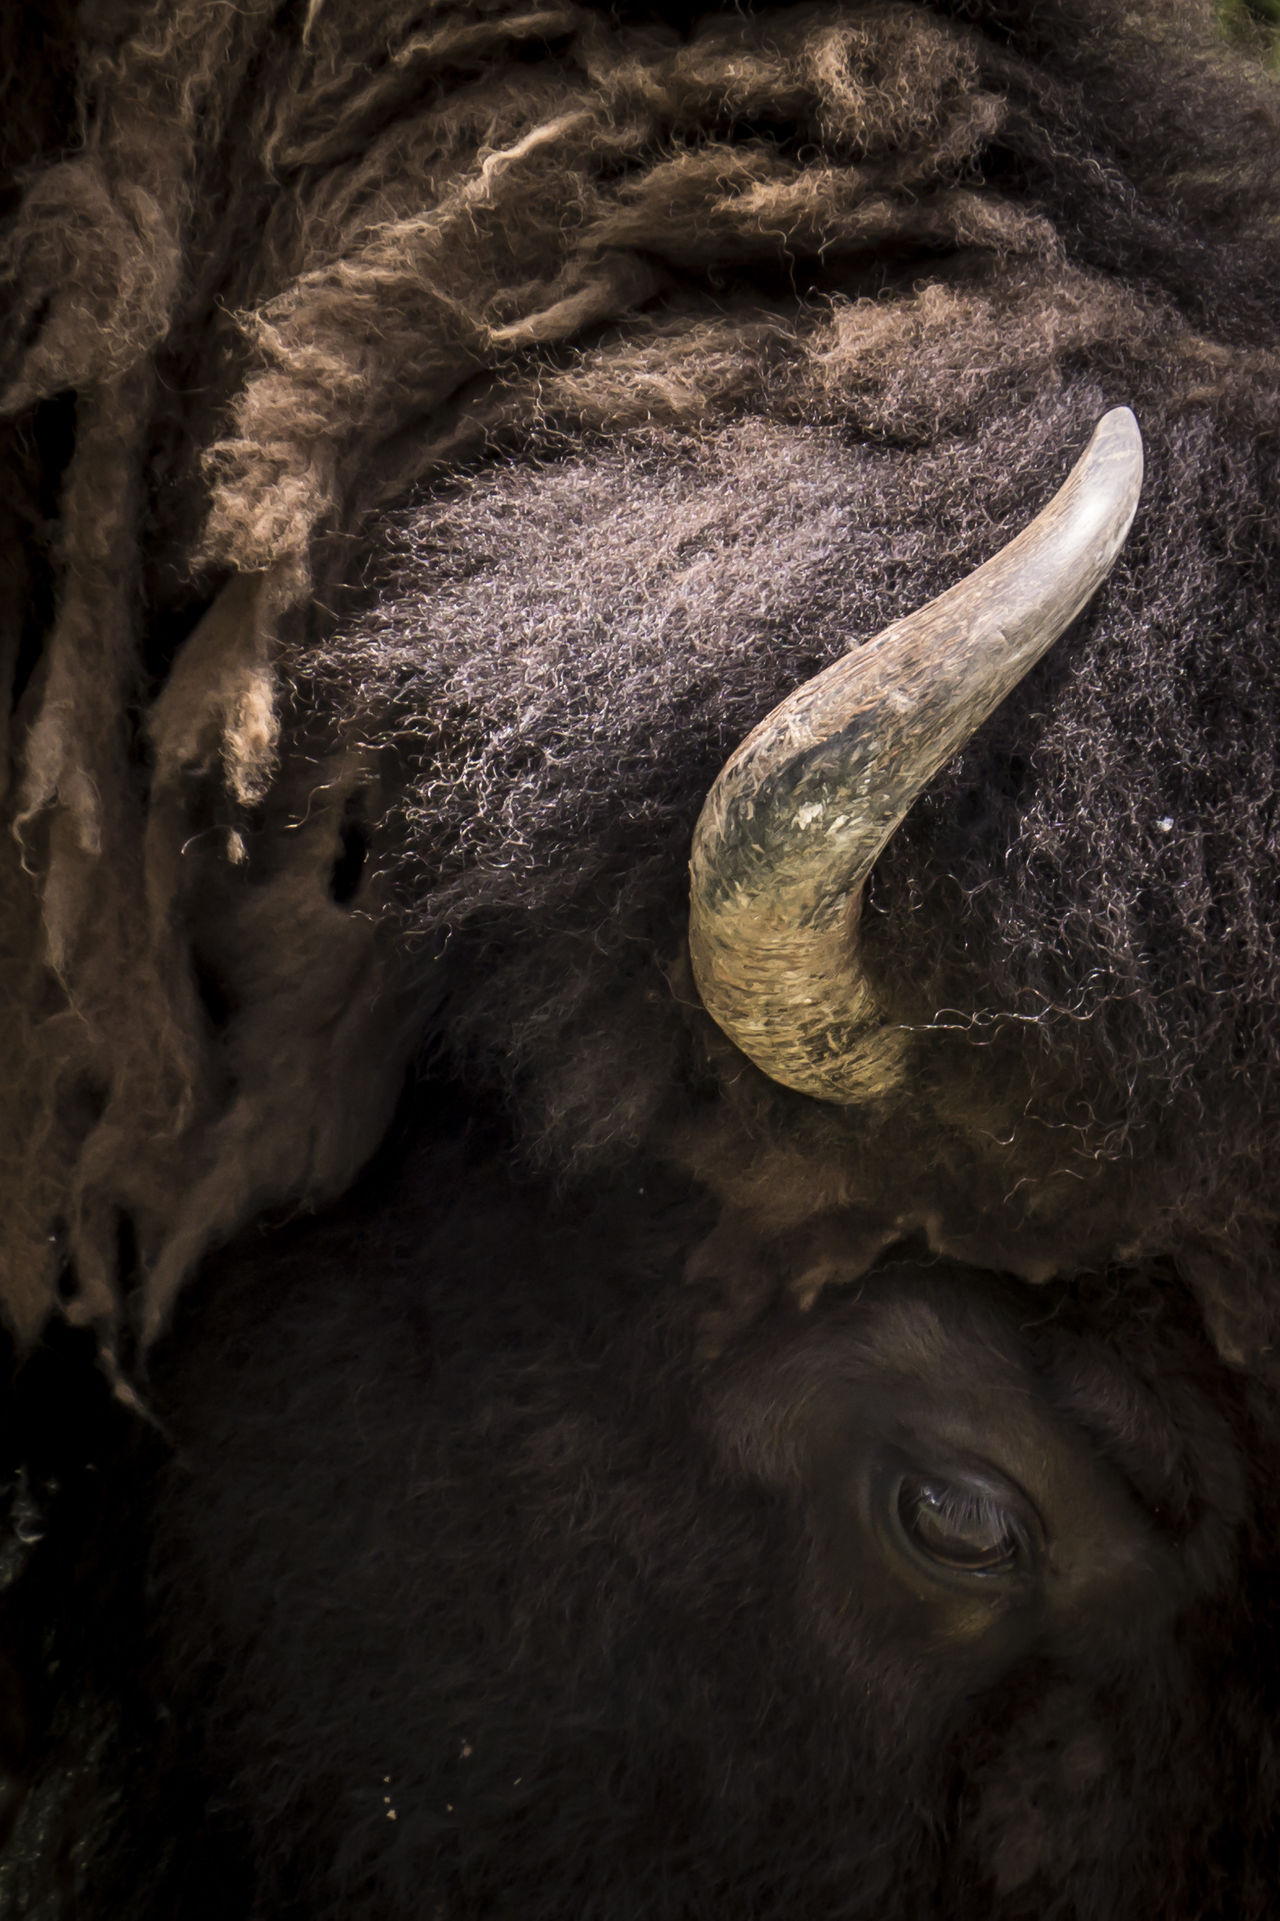 Animal Animal Body Part Animal Head  Animal Photography Animal Themes Animals Beauty In Nature Bison Buffalo Close-up Horn Nature Outdoors Zoo Zoo Animals  Zoology